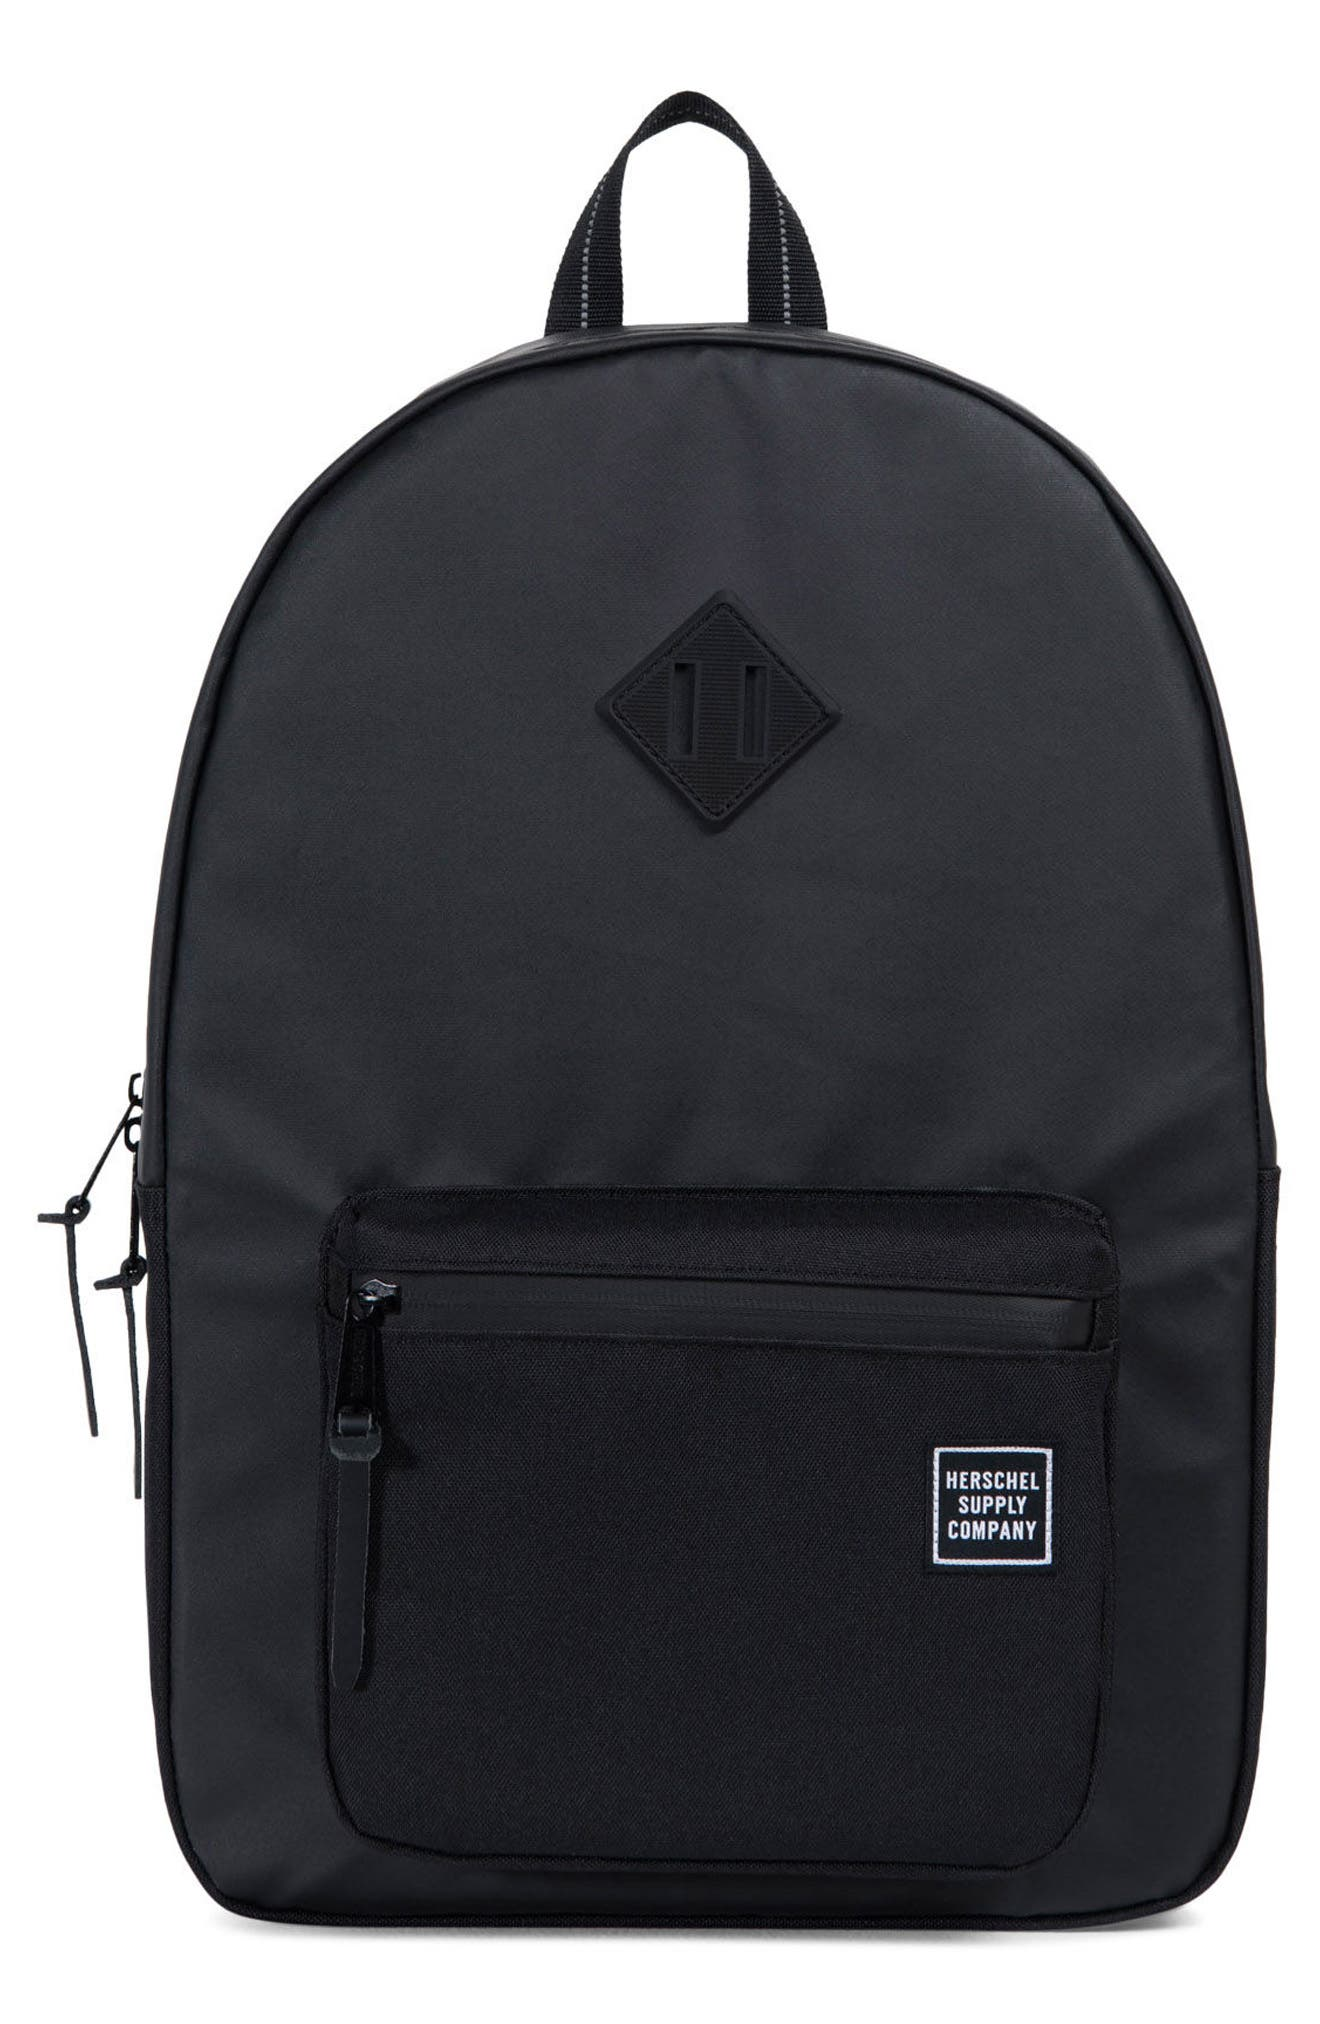 Ruskin Studio Collection Backpack,                             Main thumbnail 1, color,                             007